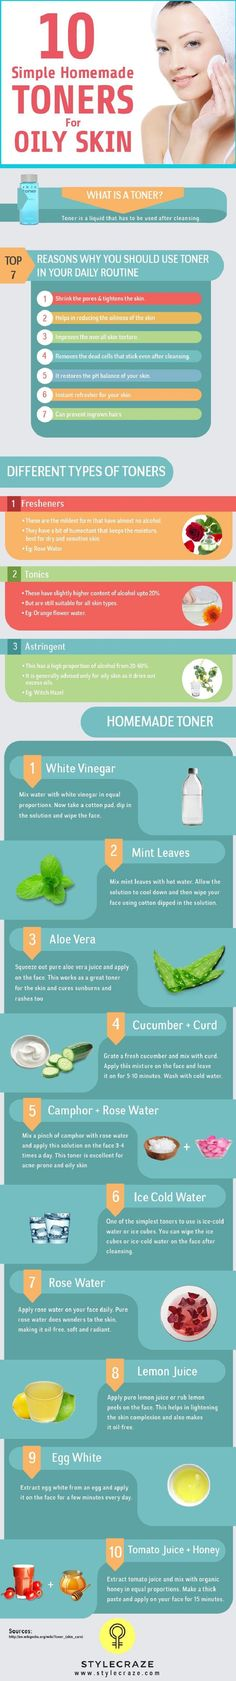 10 Simple Homemade Toners For Oily Skin - 15 Very Best Oily Skin Tips and DIYs | GleamItUp